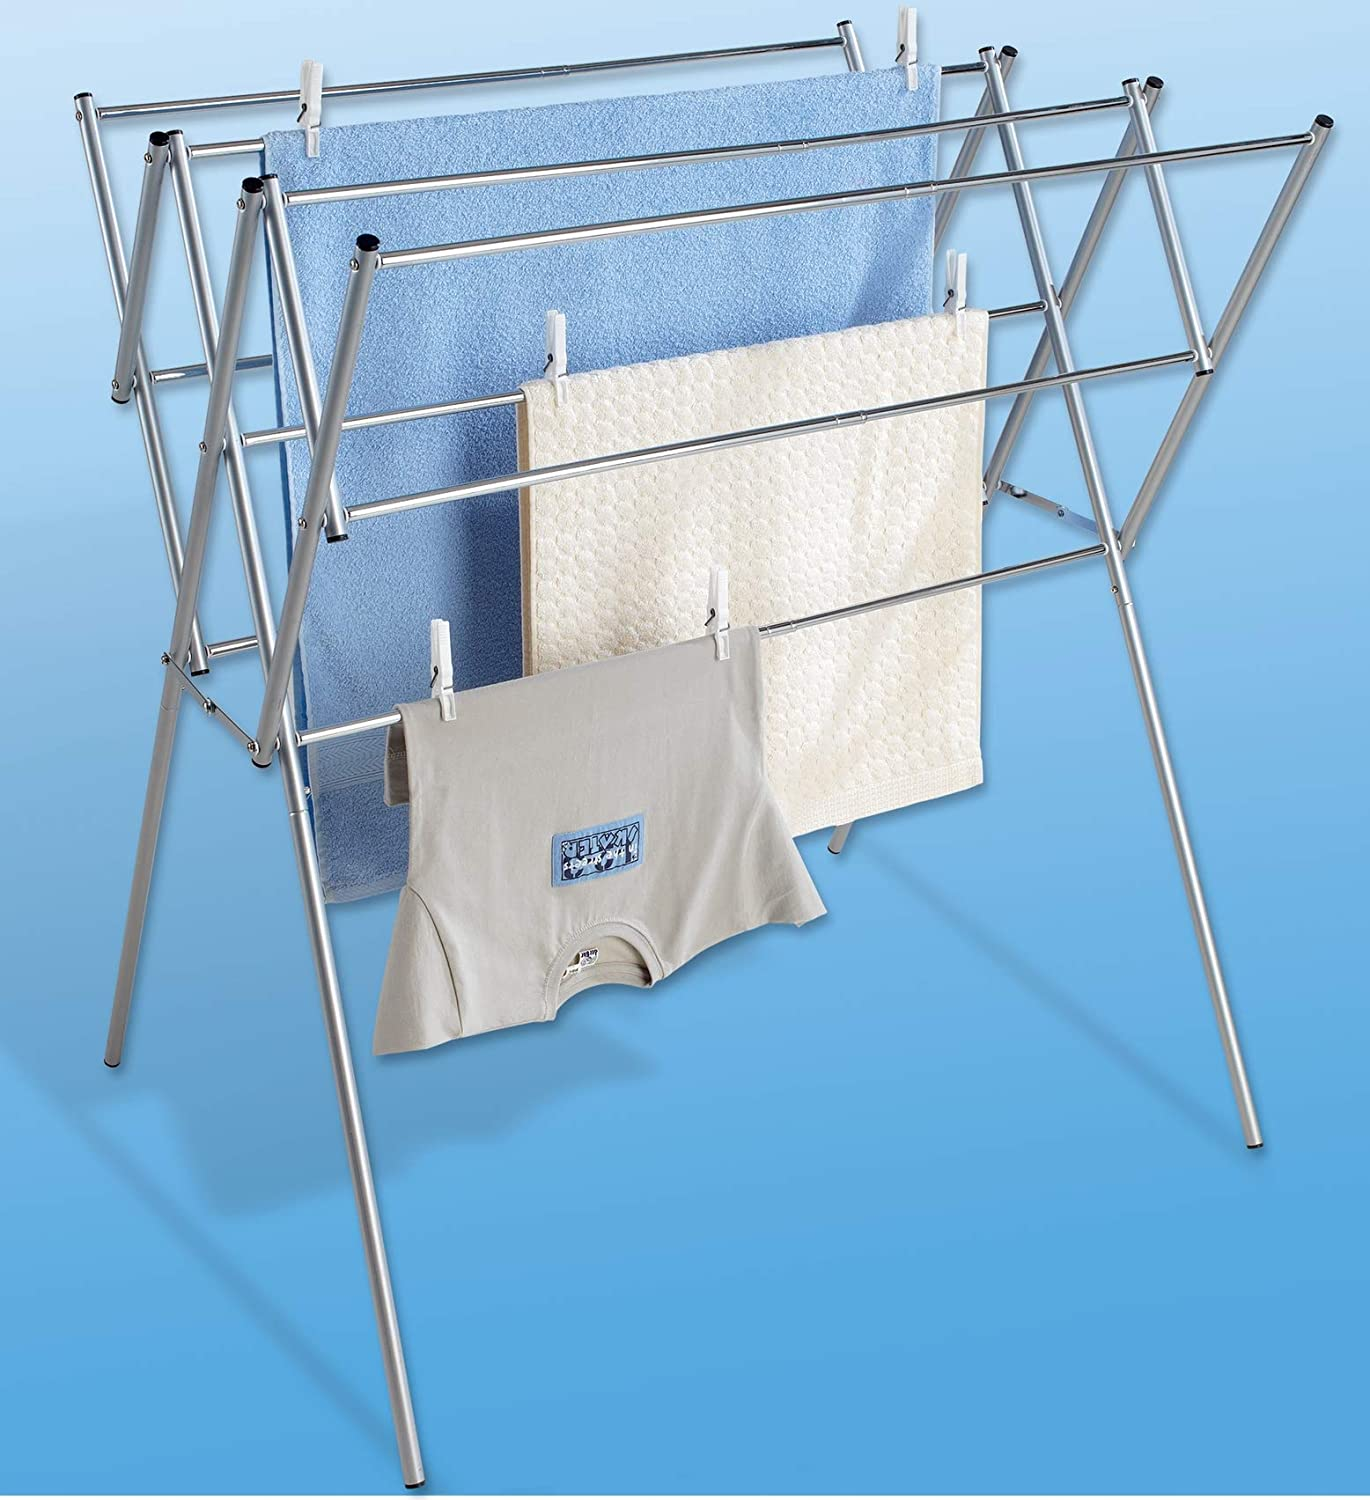 WENKO 3774017500 Telescopic Laundry Stainless 54-9 A surprise price Over item handling ☆ is realized Steel Dryer